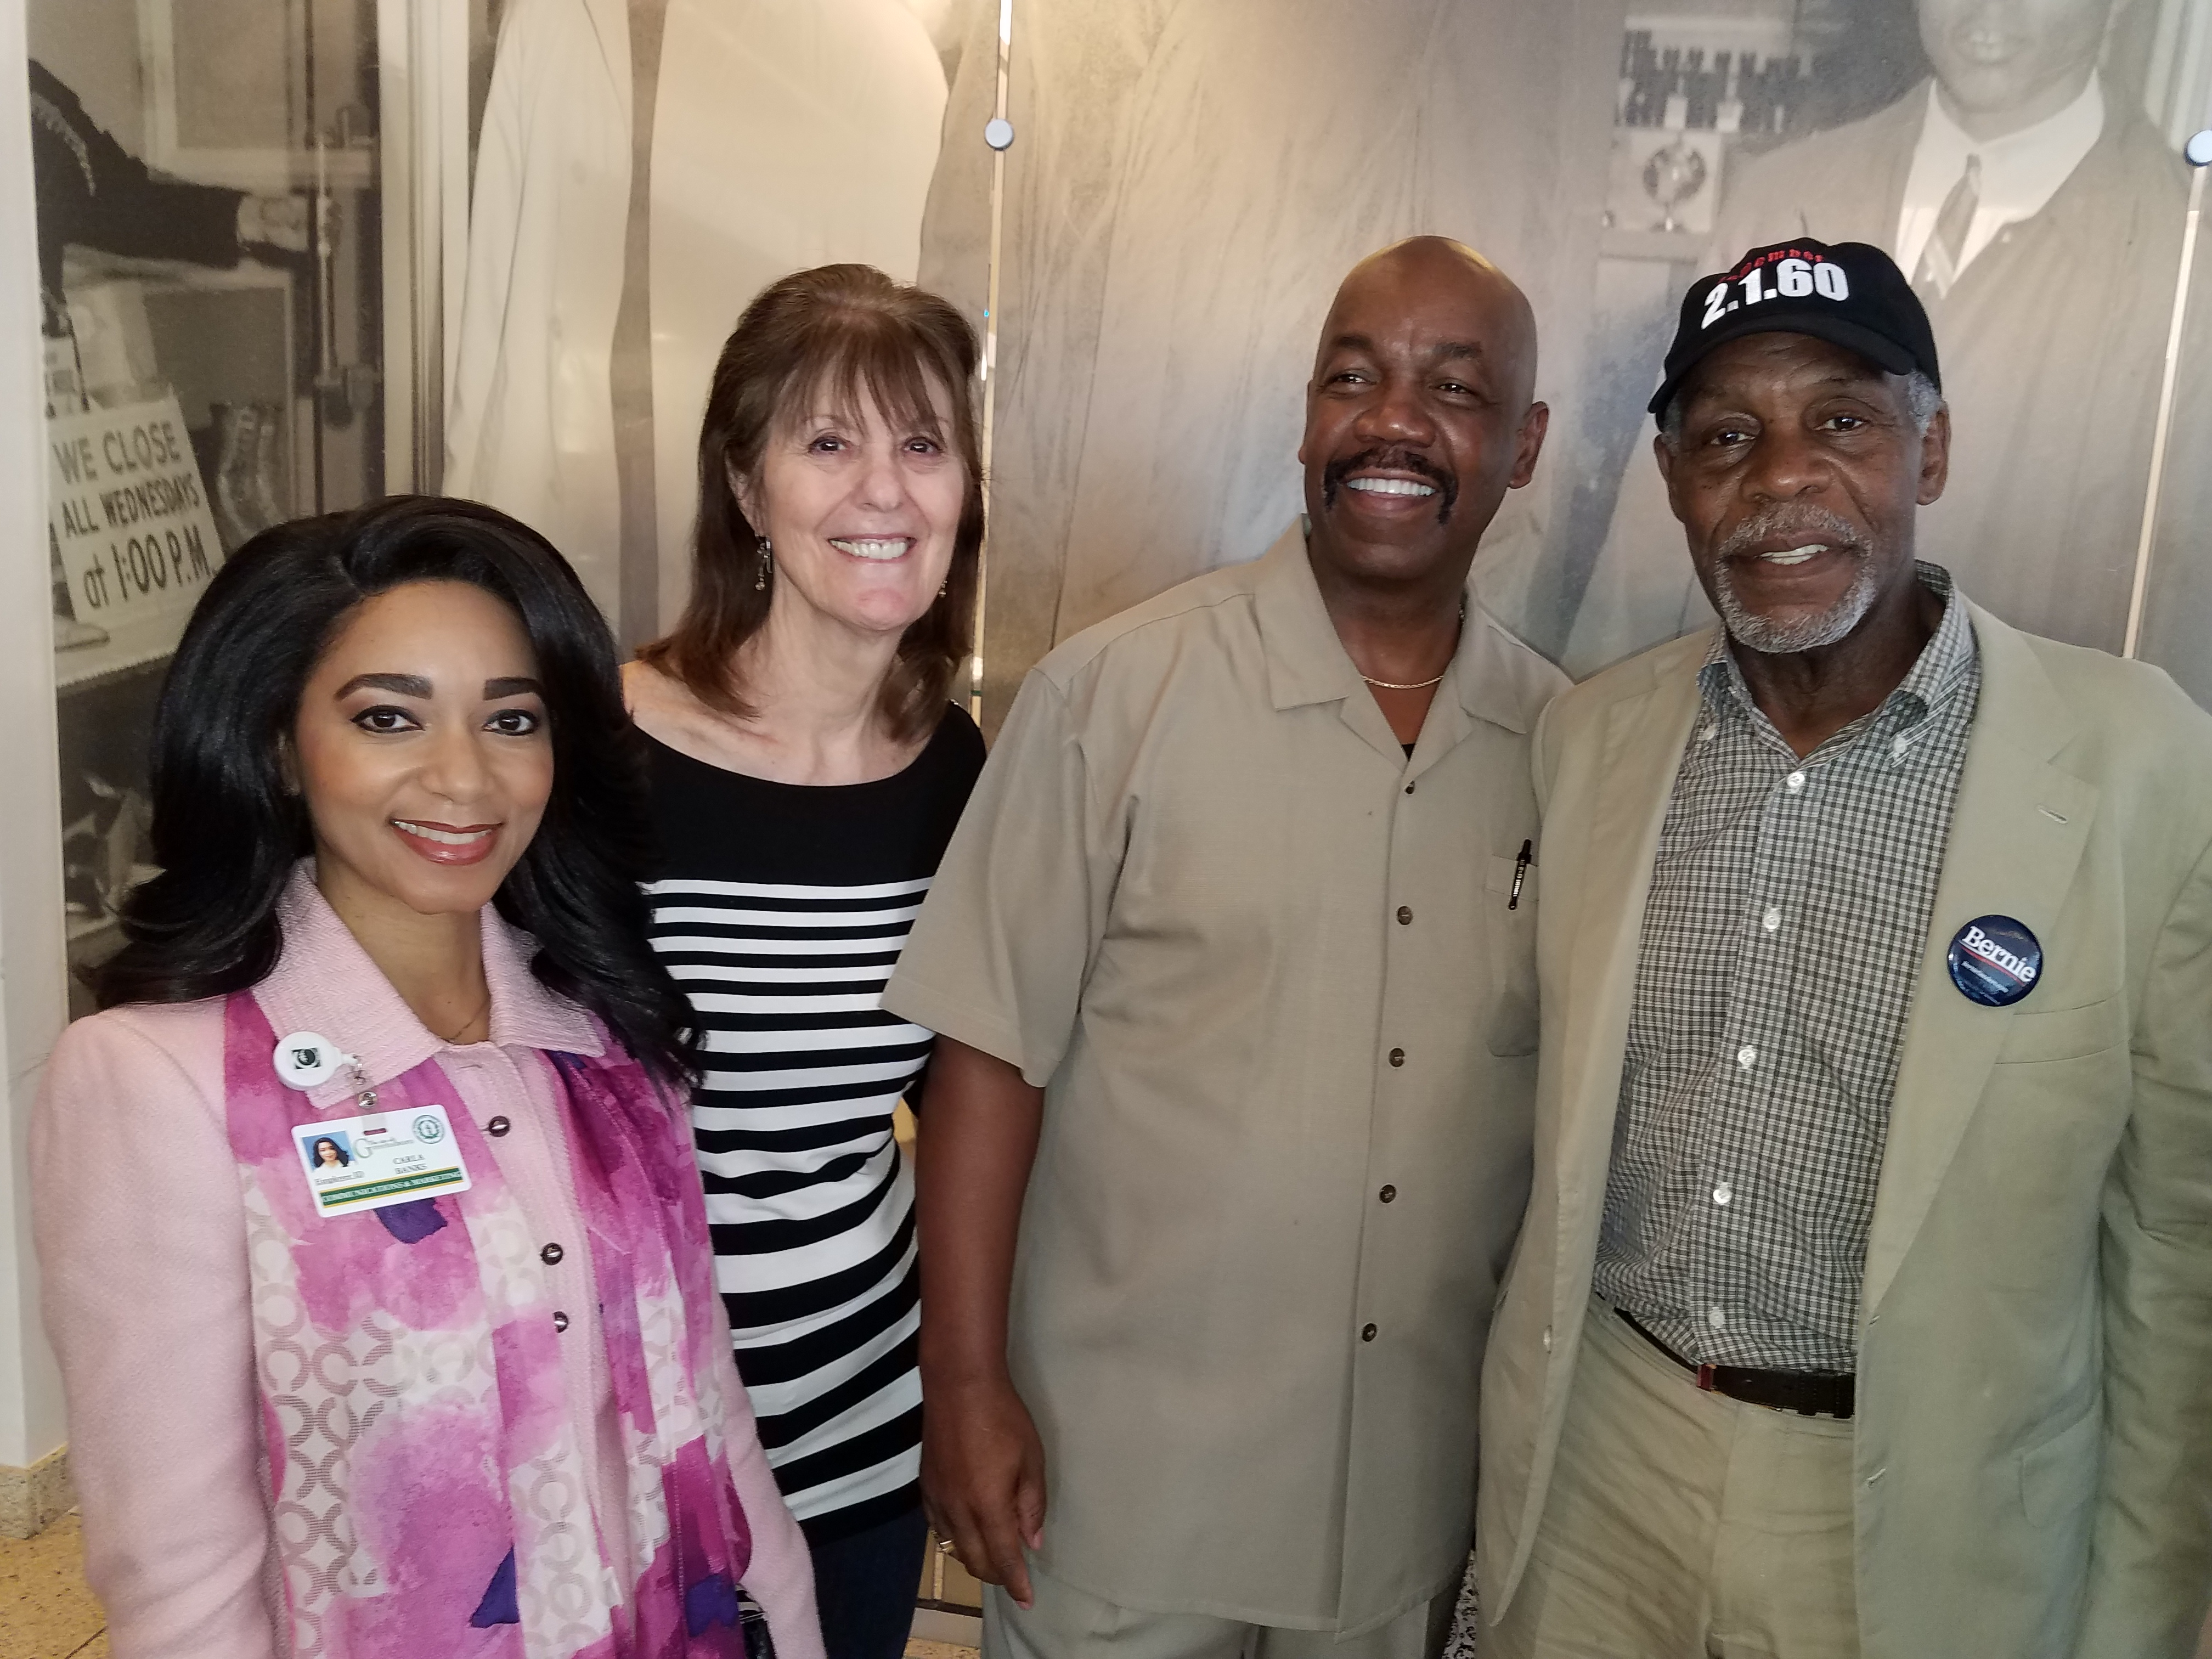 NFBPA Members Meet Danny Glover